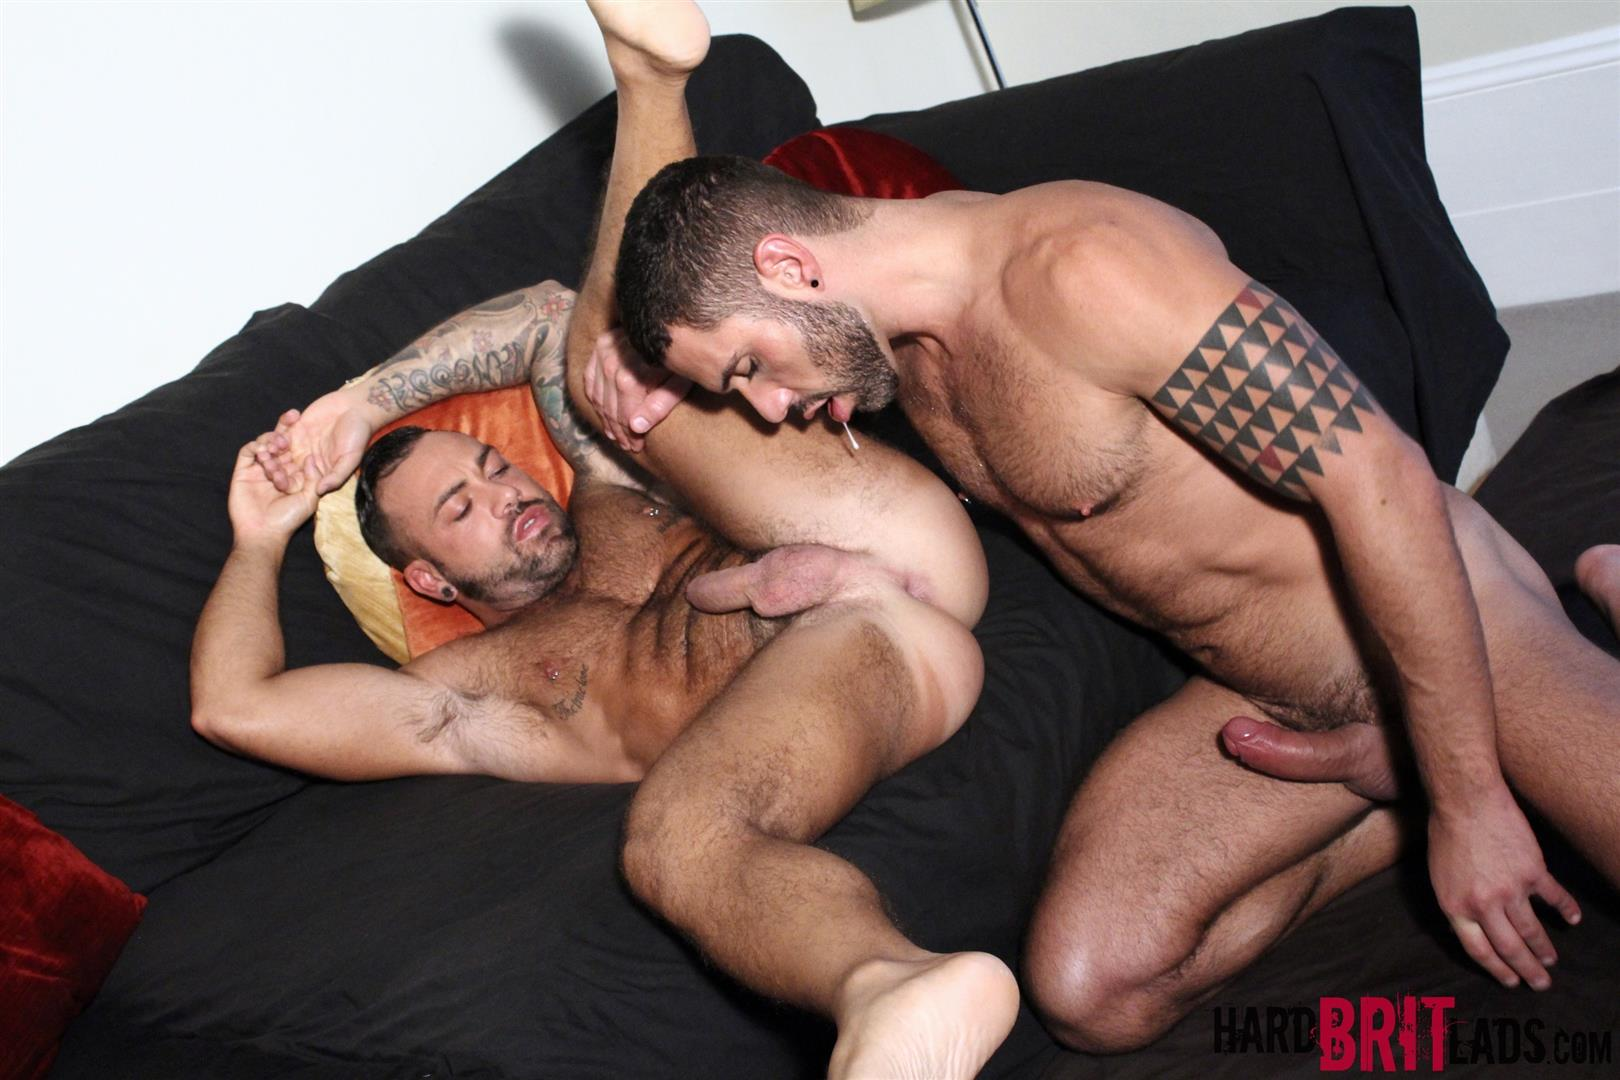 Hard Brit Lads Sergi Rodriguez and Letterio Amadeo Big Uncut Cock Fucking Amateur Gay Porn 14 Hairy British Muscle Hunks Fucking With Their Big Uncut Cocks